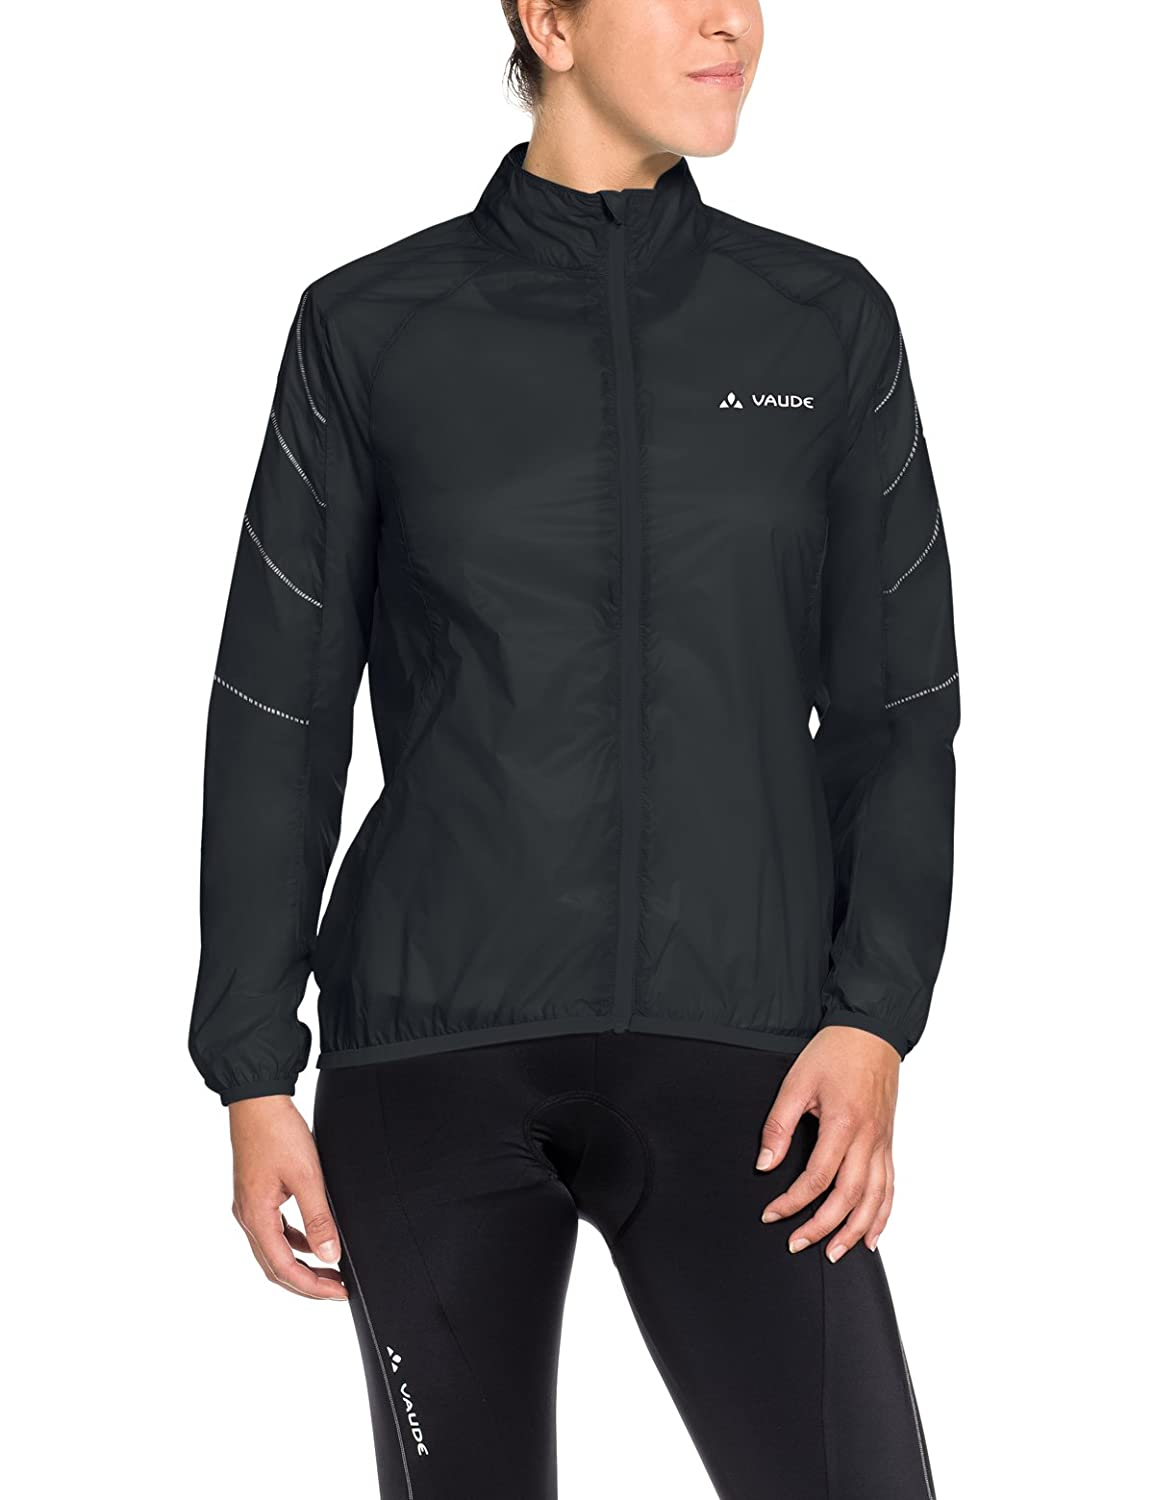 Vaude Women's Pro Windshell Lw Jacket